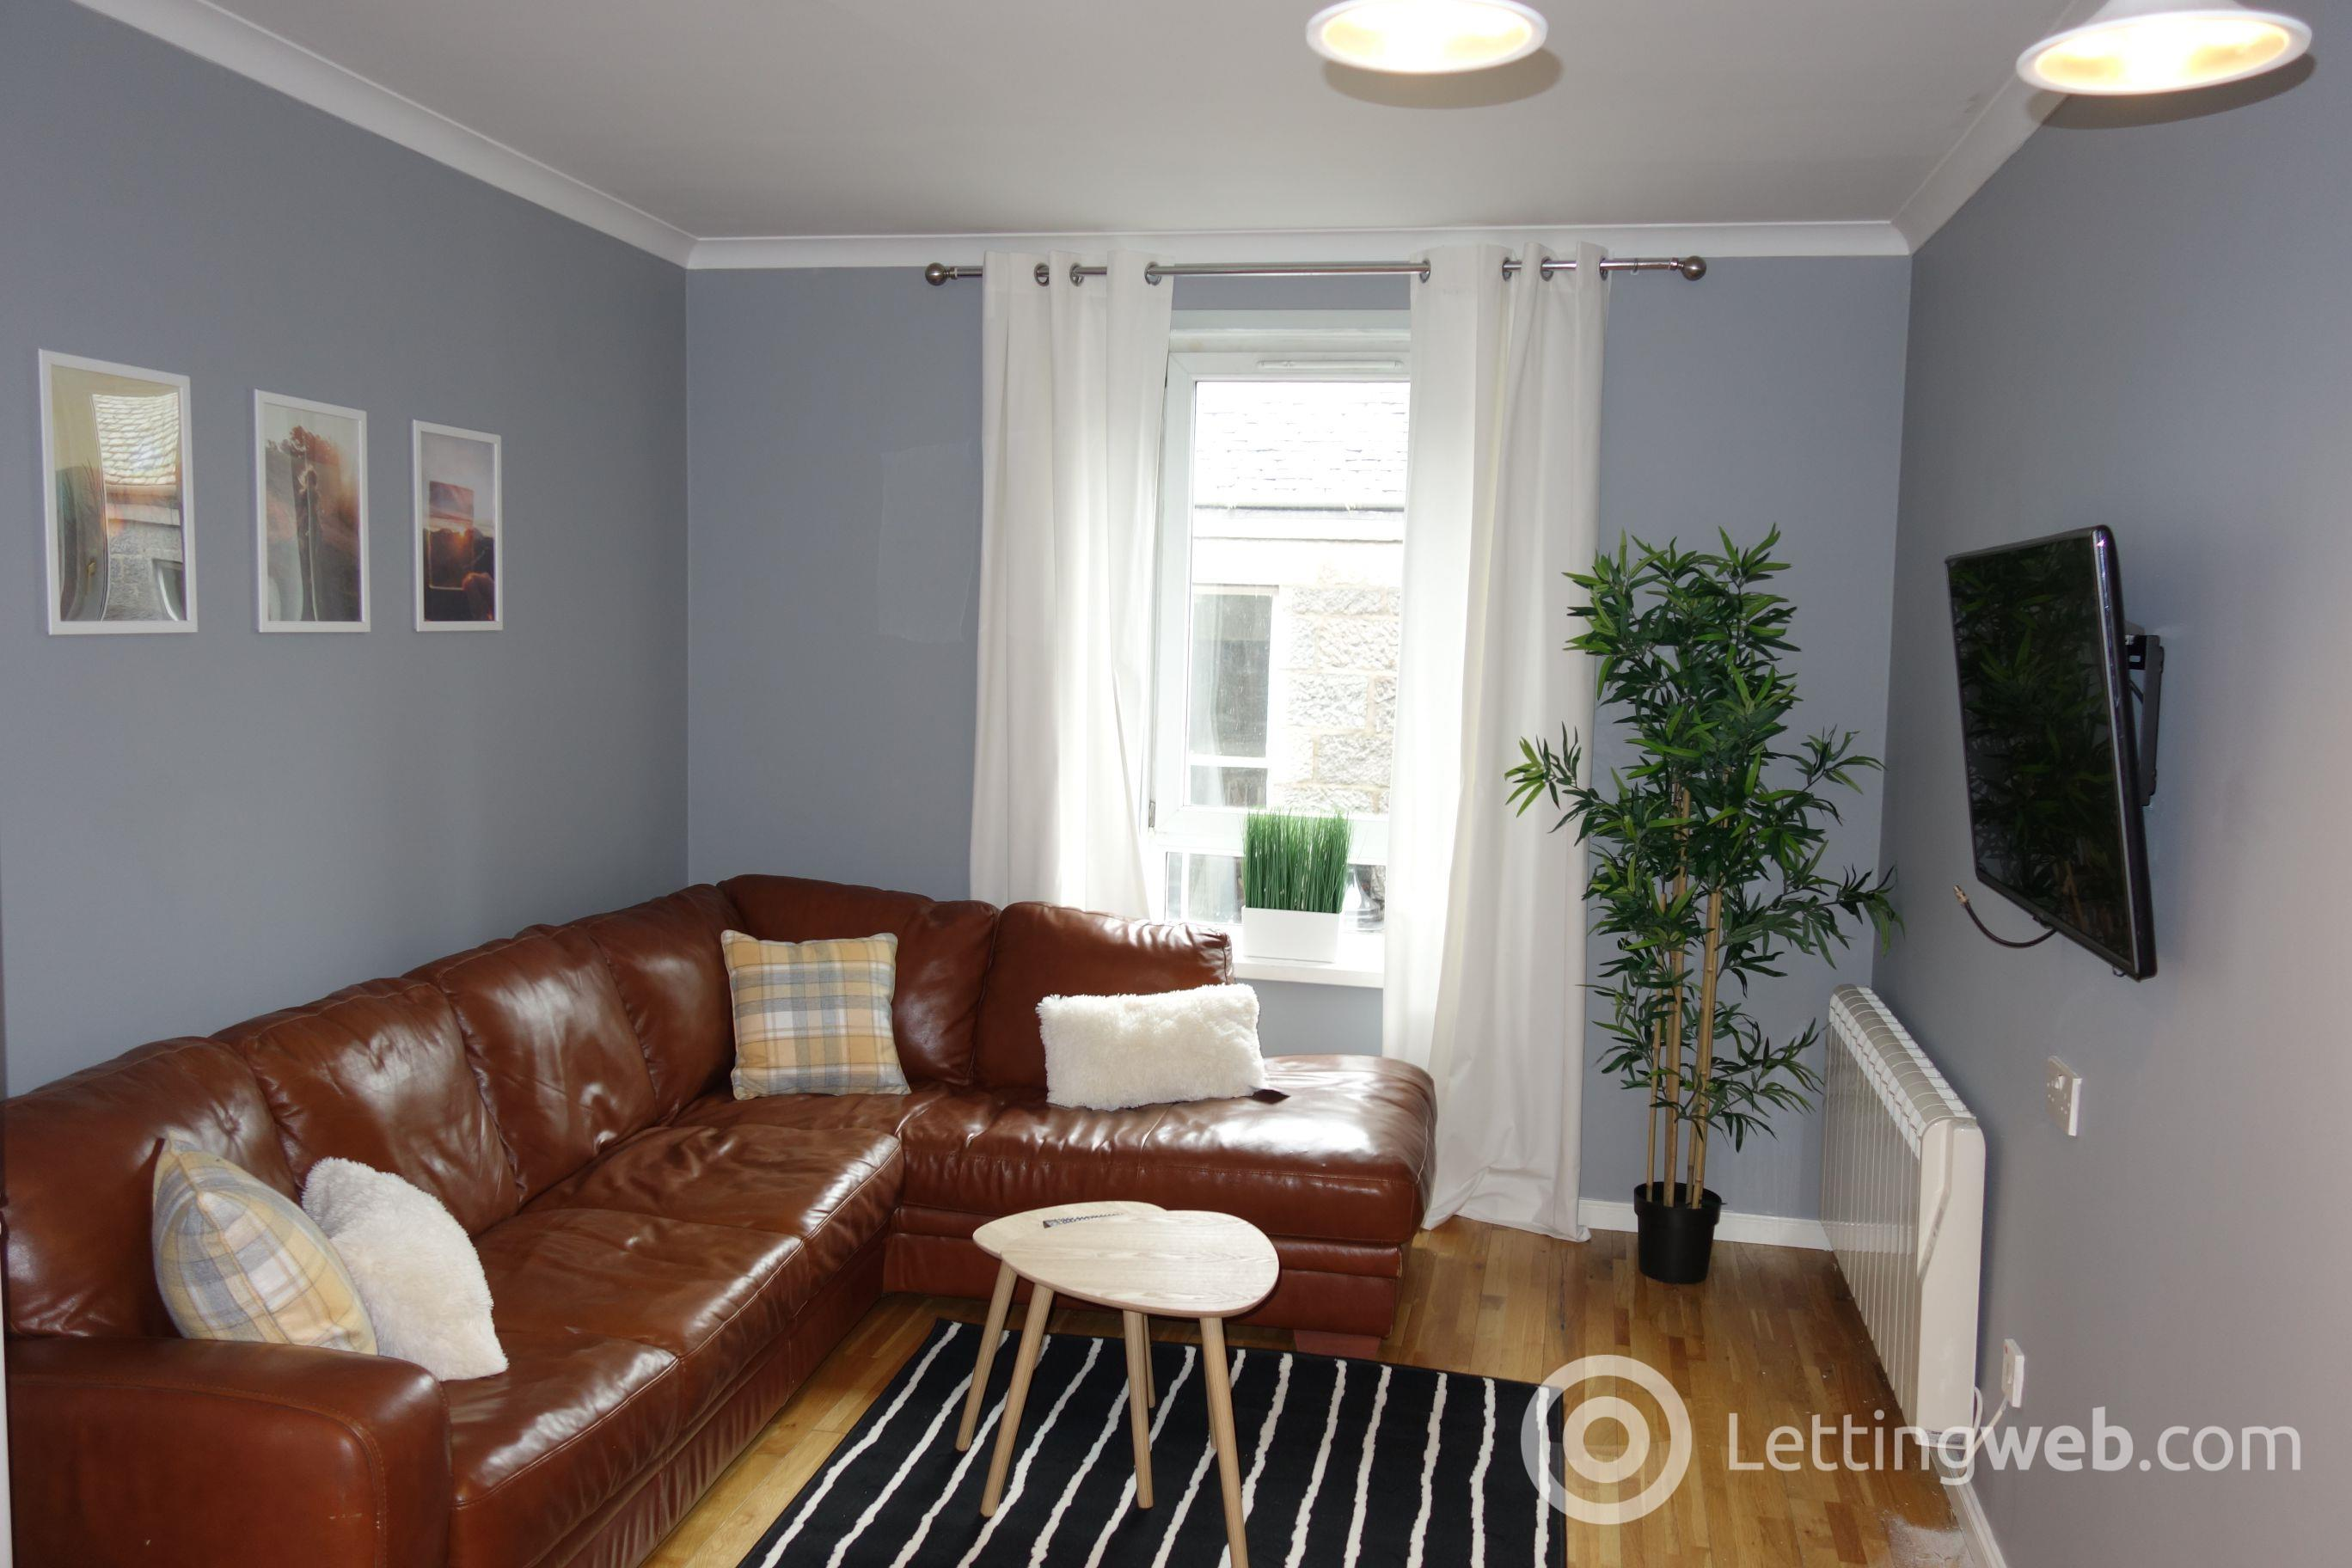 Property to rent in 4 bedroom HMO flat at Shiprow - for up to 5 people